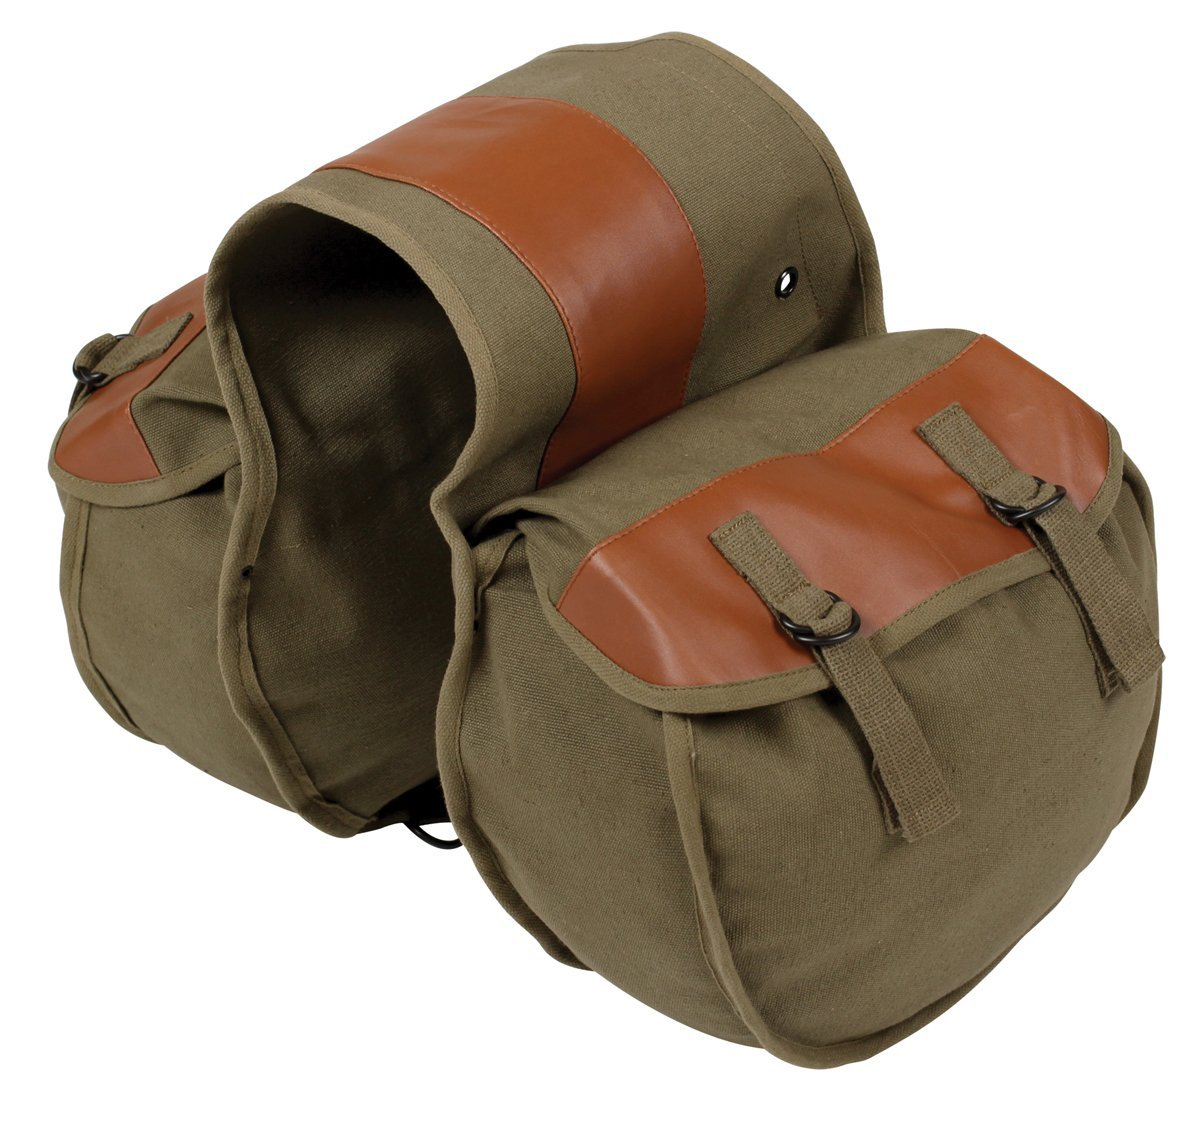 4. Stansport Saddle Bag